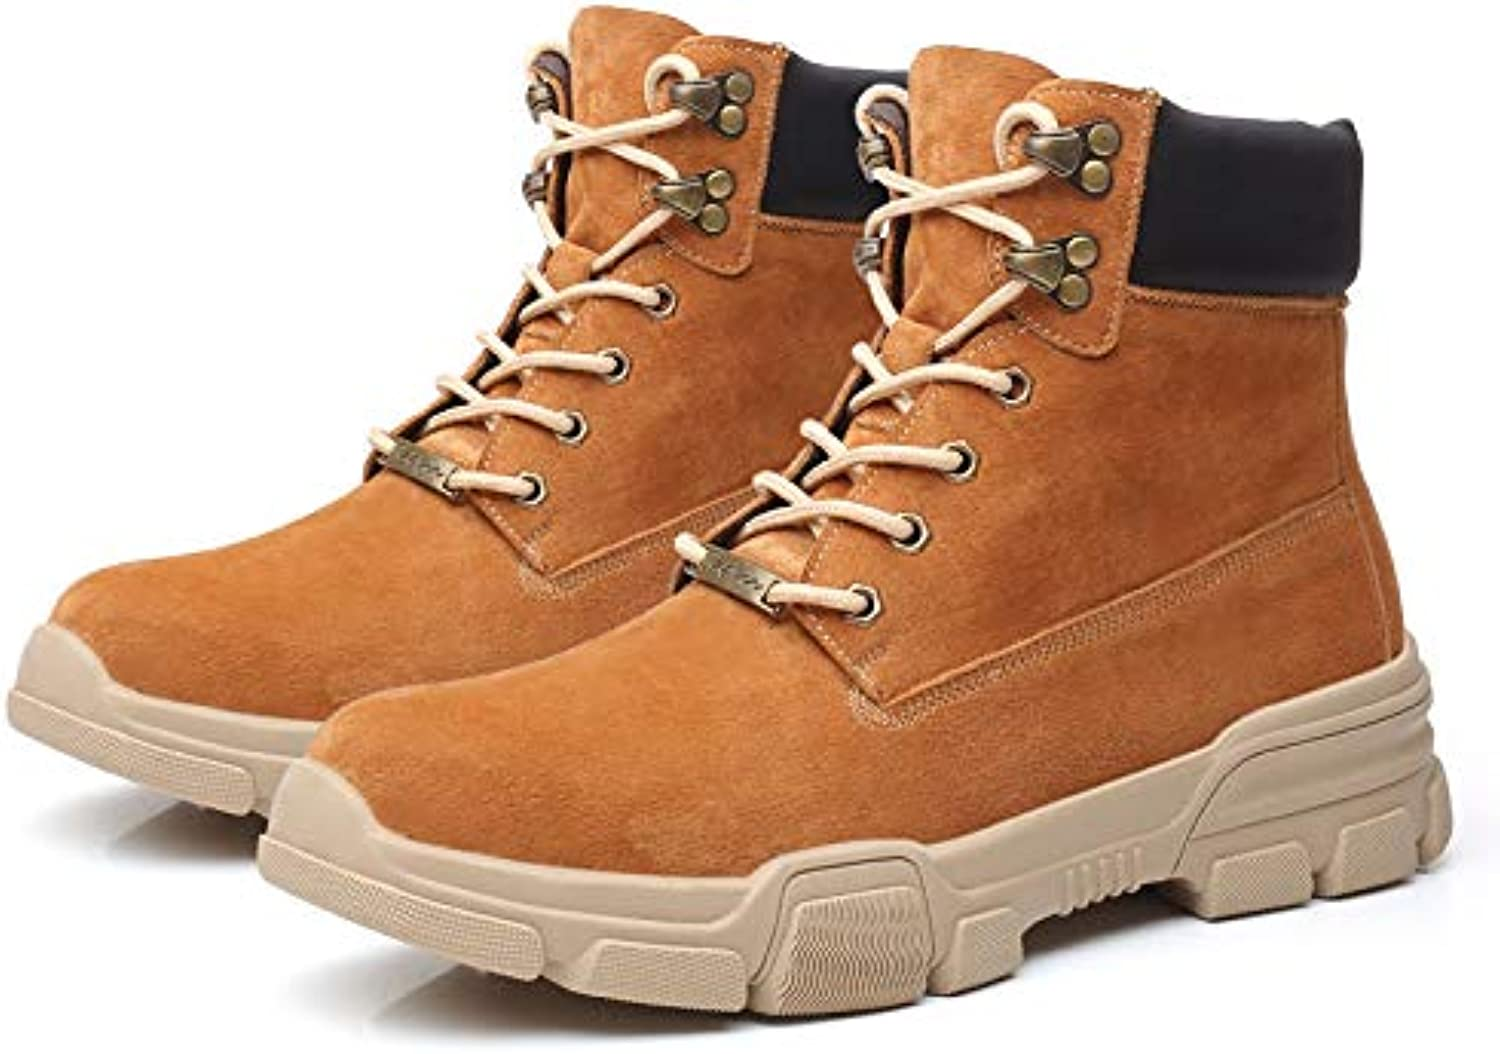 LOVDRAM Boots Men's Martin Boots Men'S High shoes New Outdoor Casual Men'S Single shoes Leather Retro High Tube Men'S Martin Boots